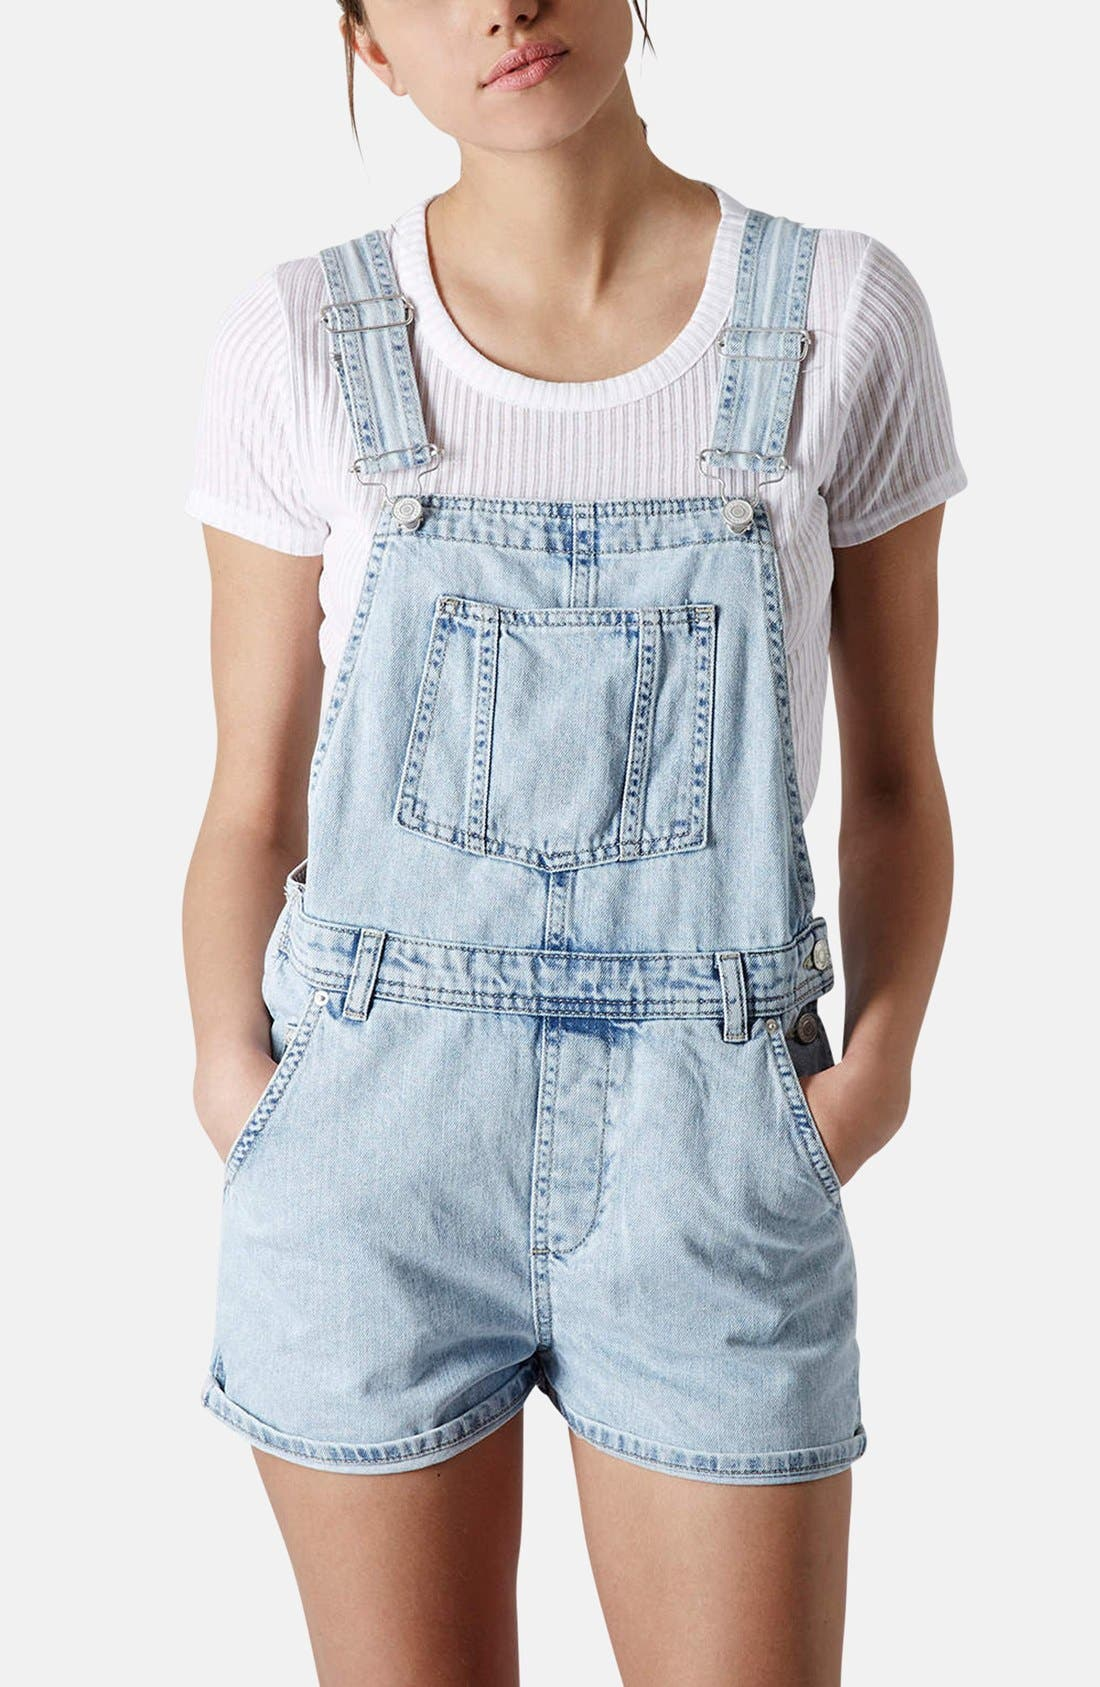 Alternate Image 1 Selected - Topshop Moto Short Overalls (Petite)